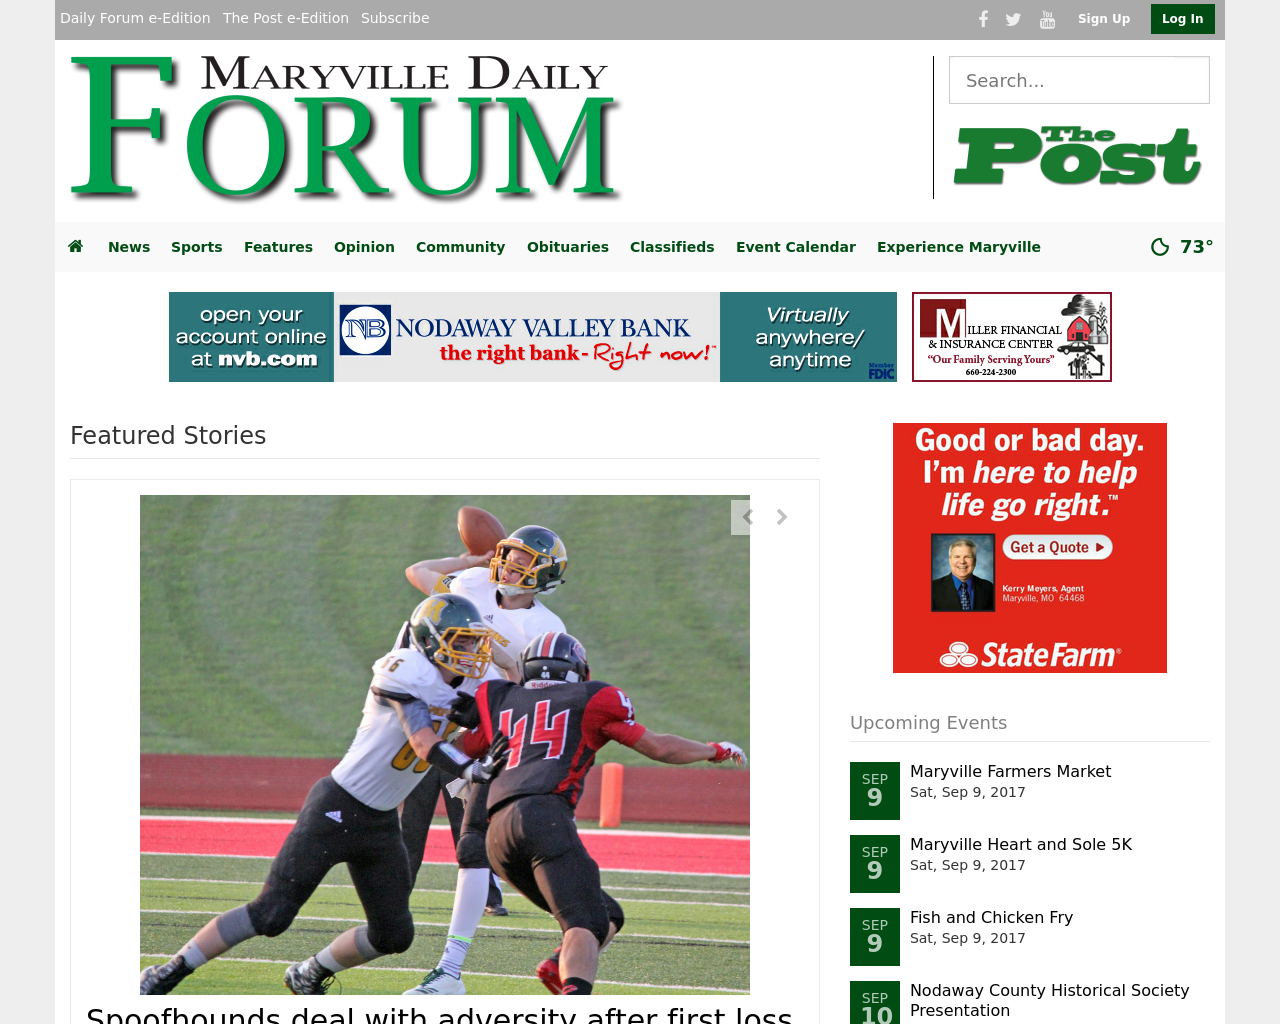 Maryville-Daily-Forum-Advertising-Reviews-Pricing